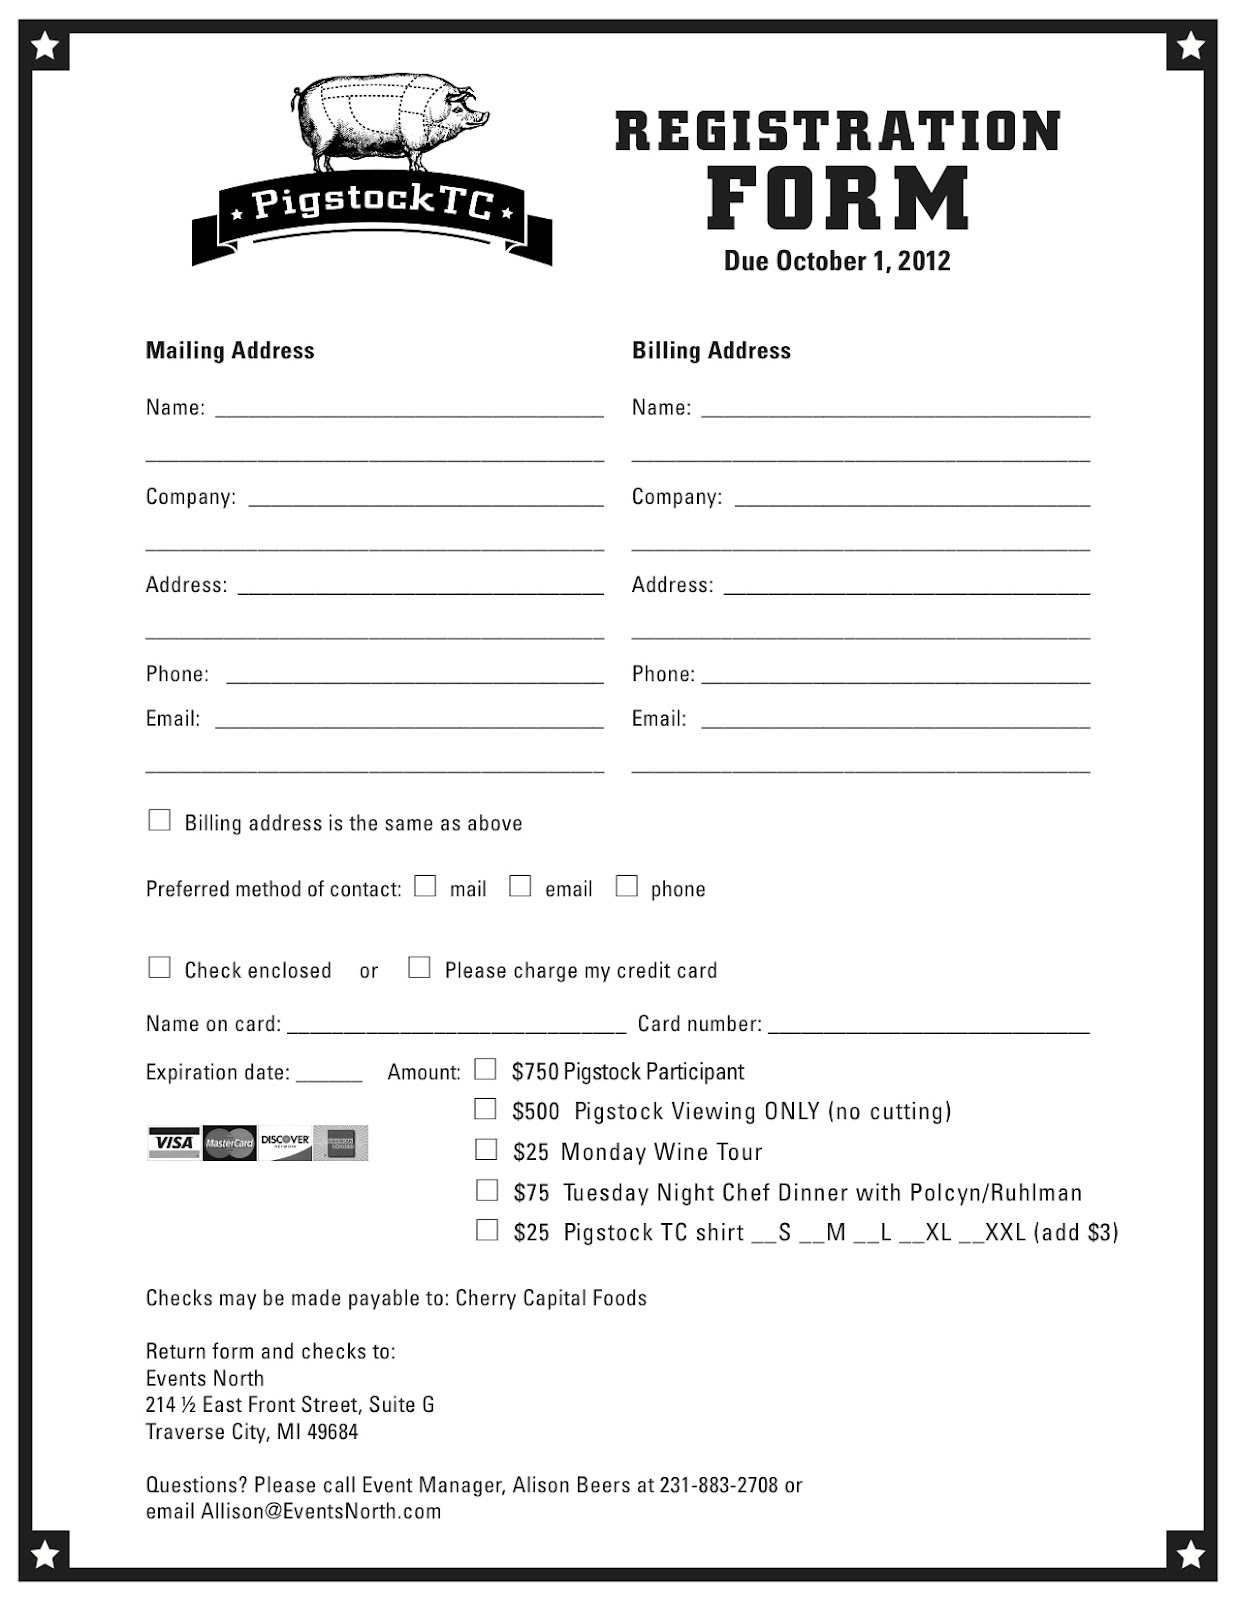 application form registration form template printable. Black Bedroom Furniture Sets. Home Design Ideas